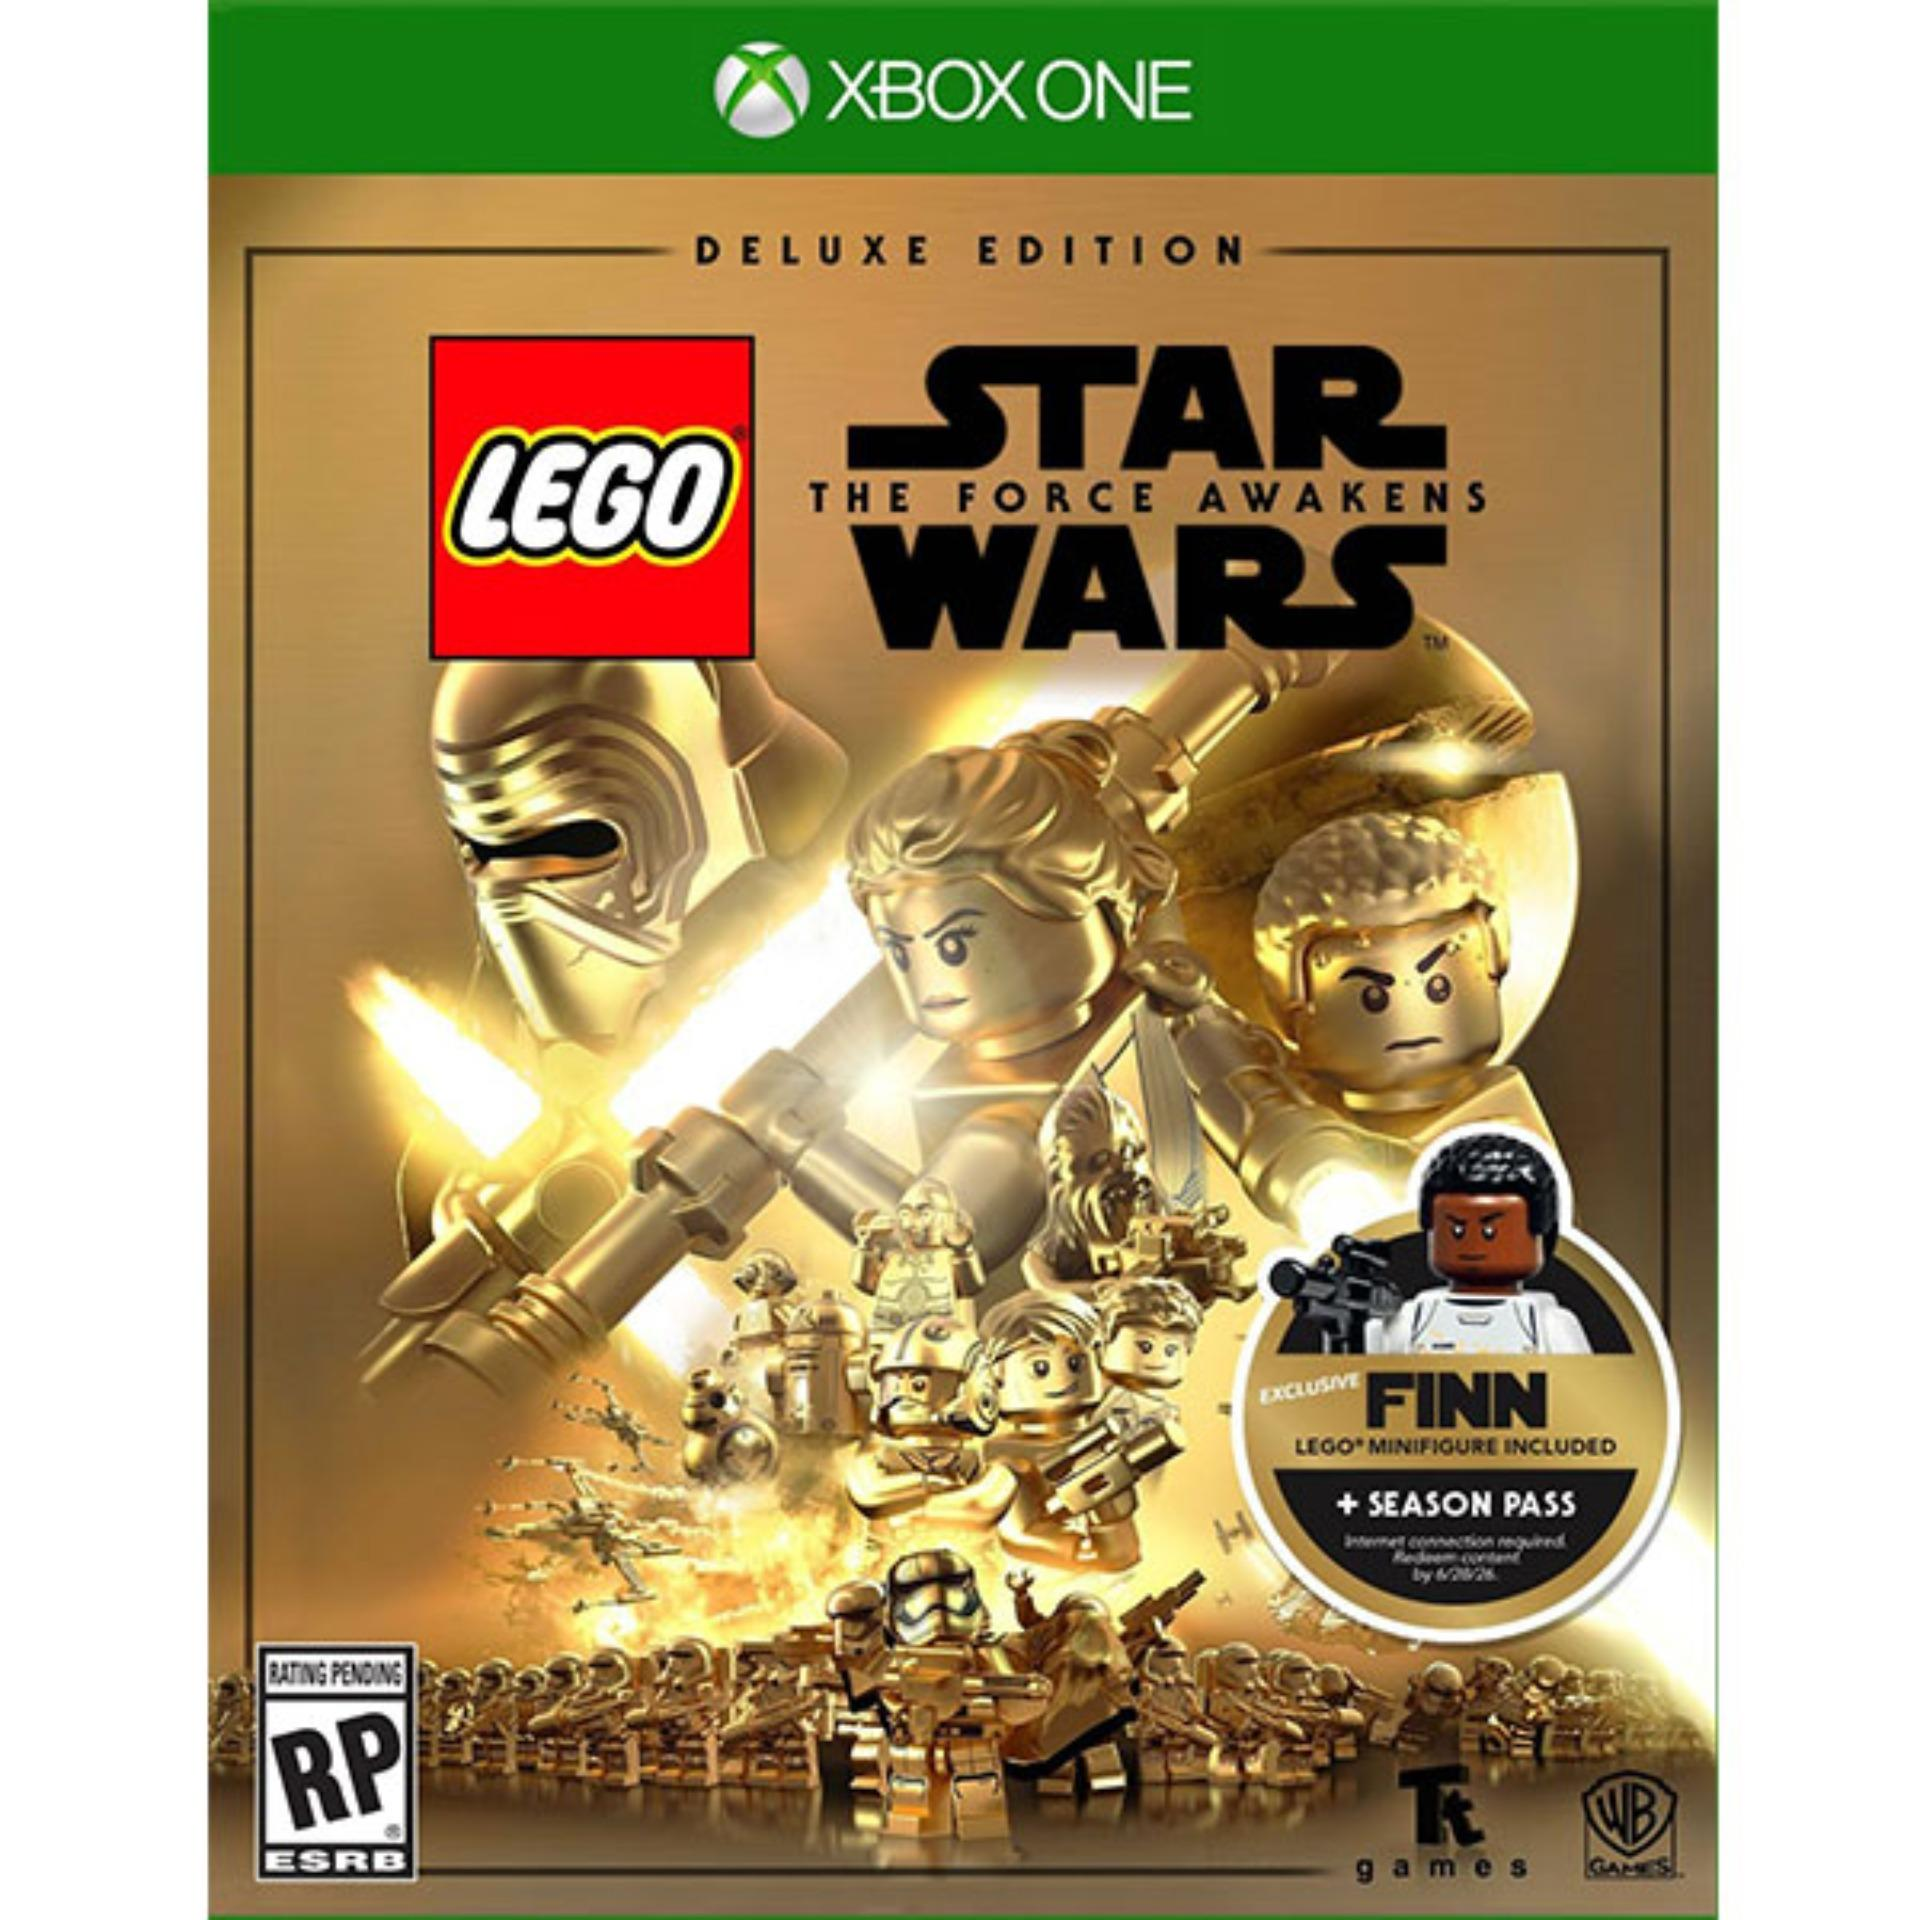 Xbox One Lego Star Wars: The Force Awakes Deluxe Edition